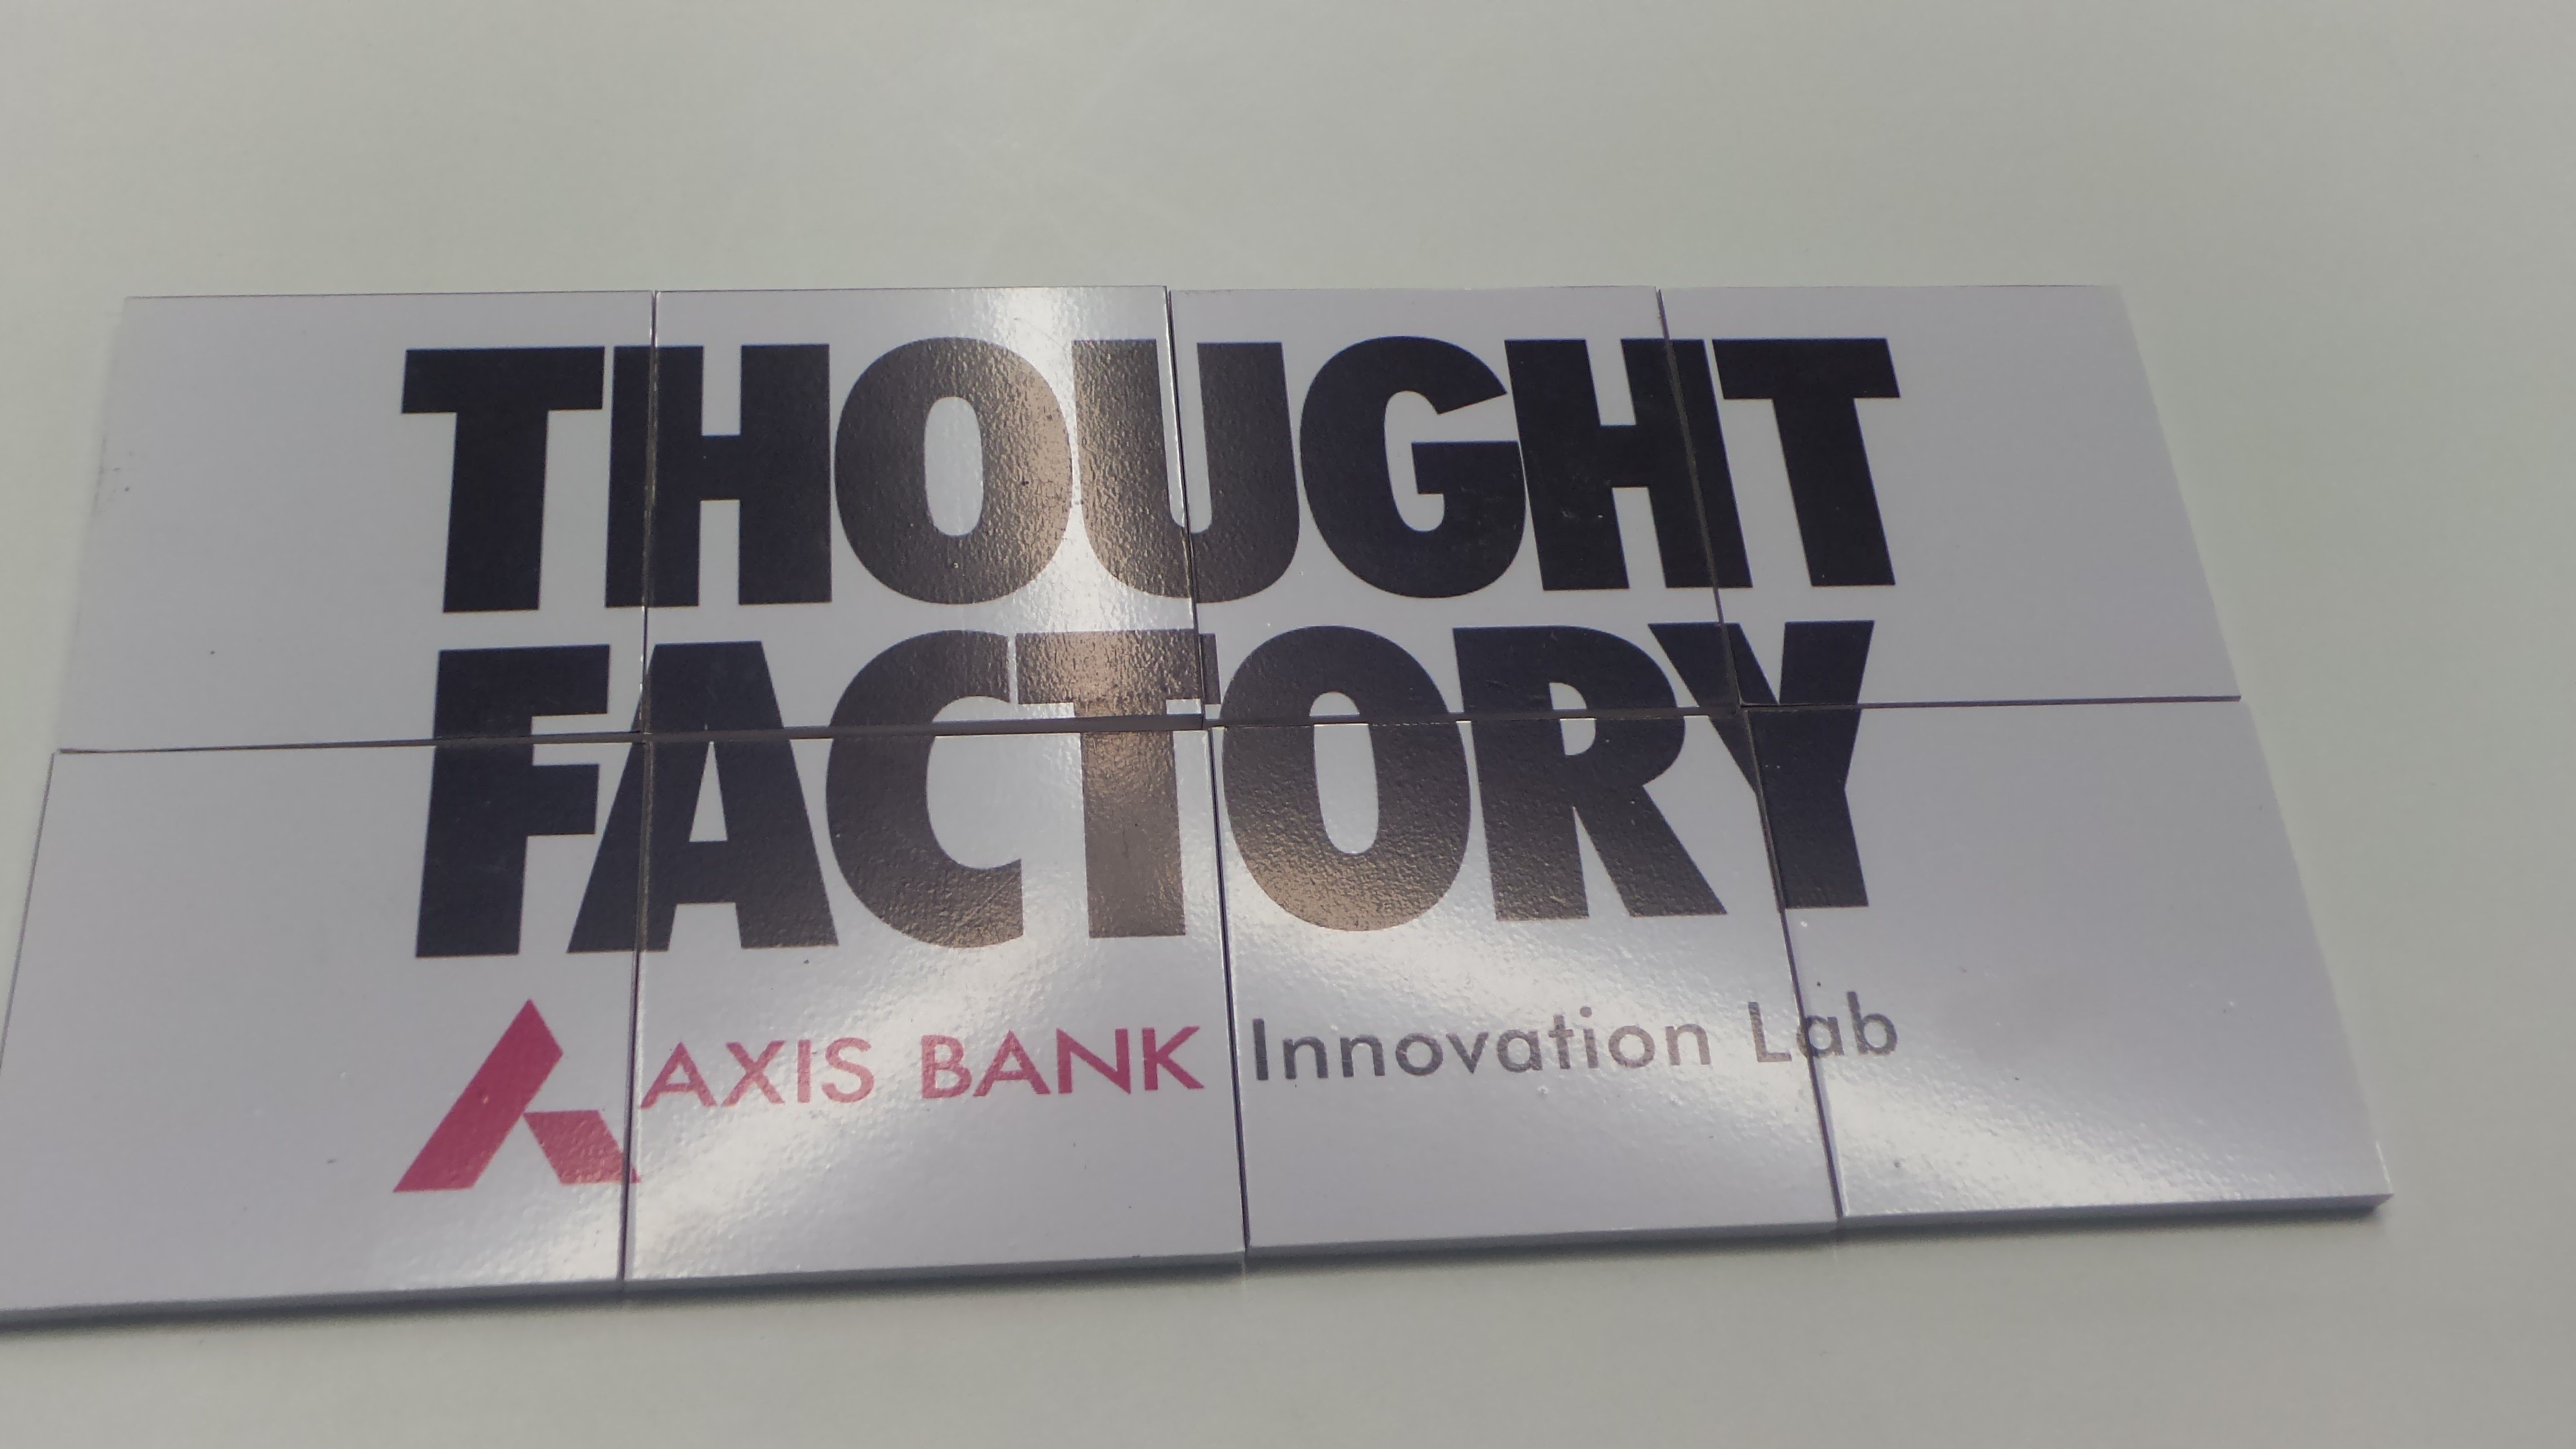 Axis Bank ThoughtFactory